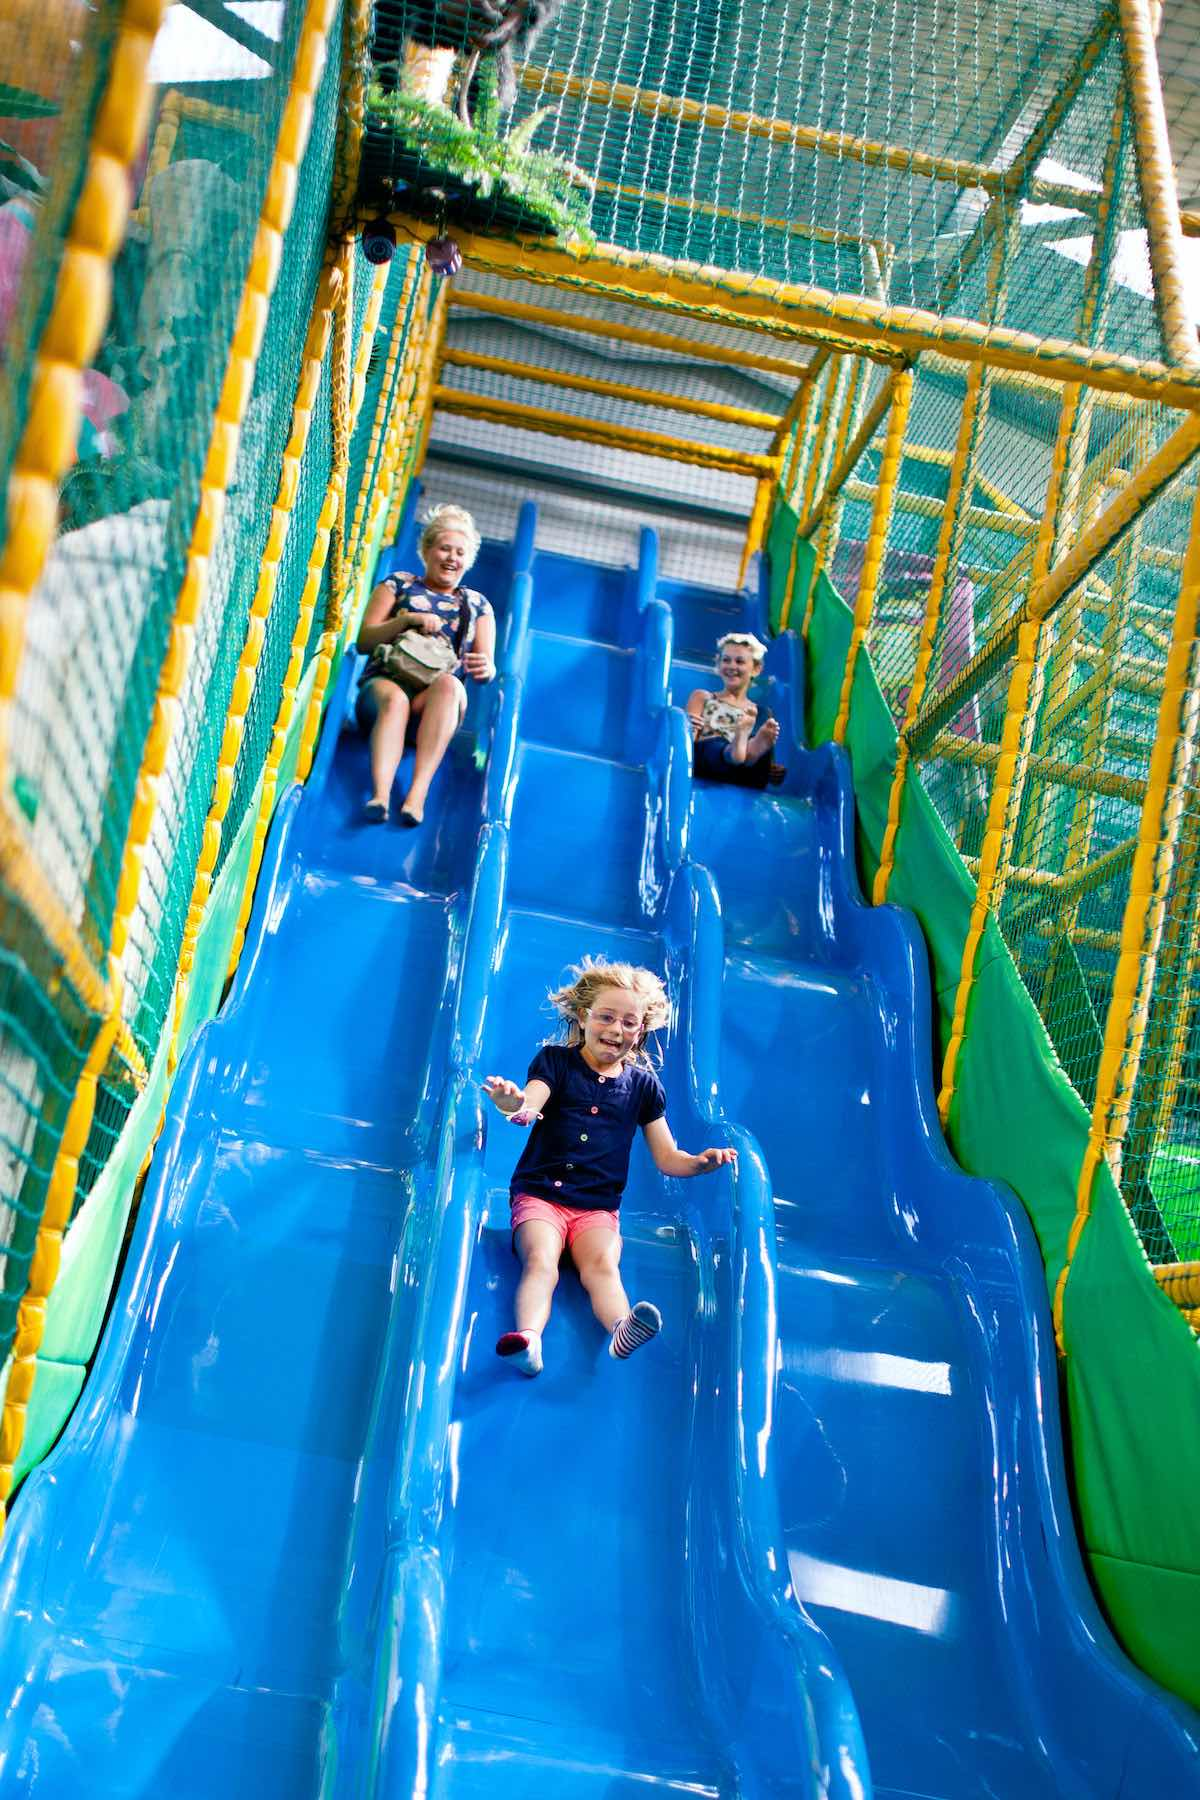 Kids on the massive slide at Sundown Adventureland